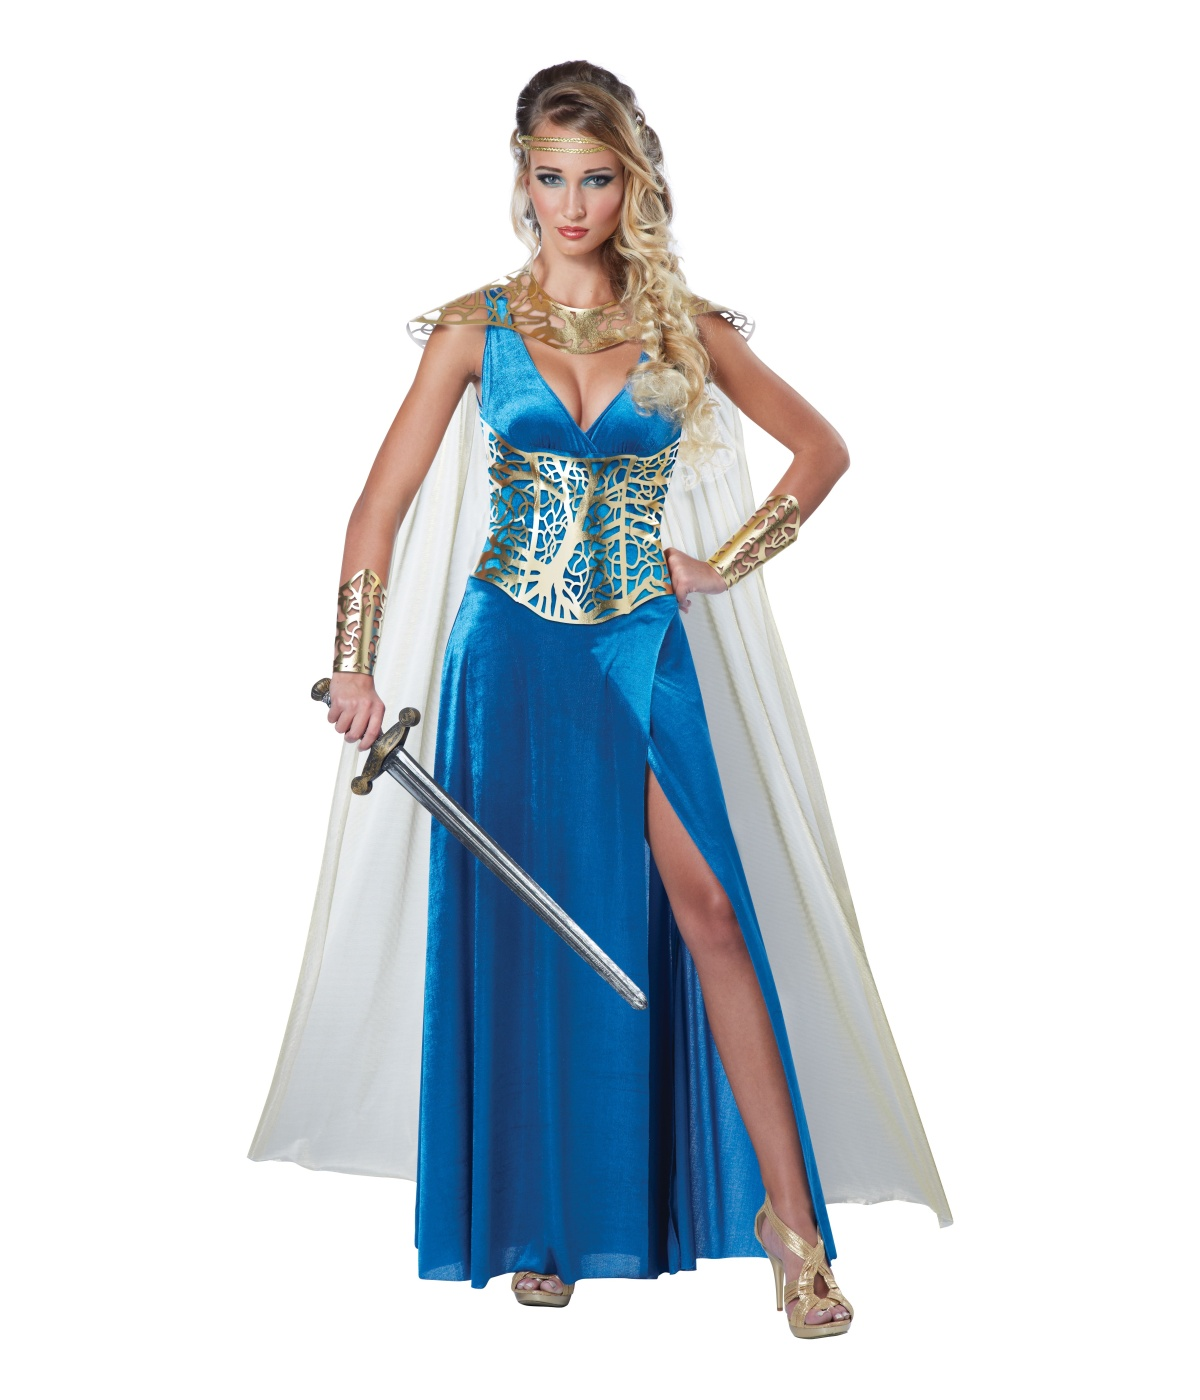 warrior-queen-woman-costume